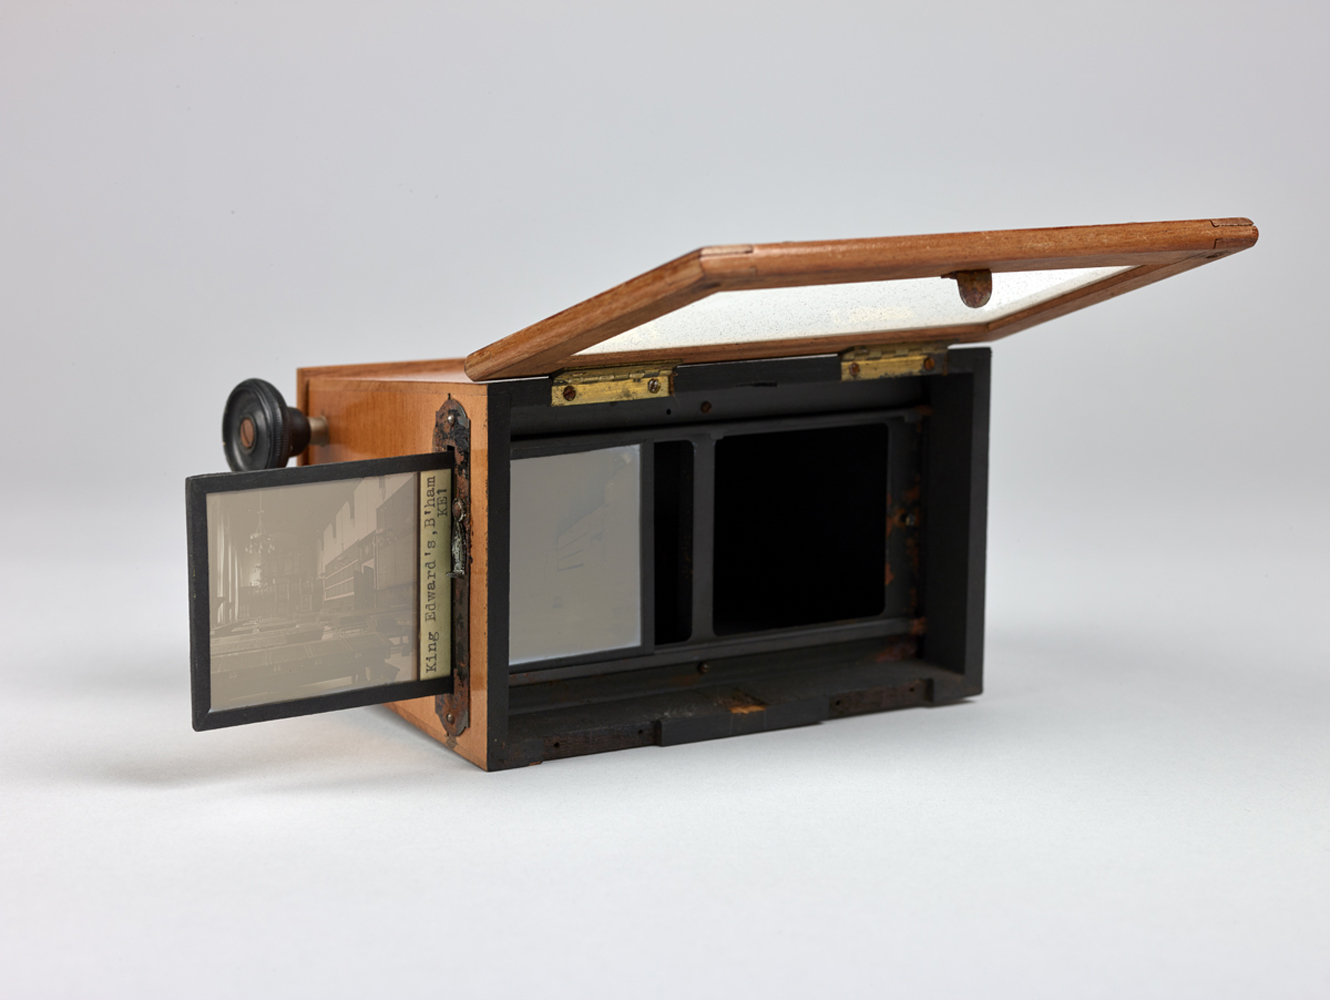 http://davidrowan.org/files/gimgs/54_ke-archive-stereoscope-viewer-two-19.jpg